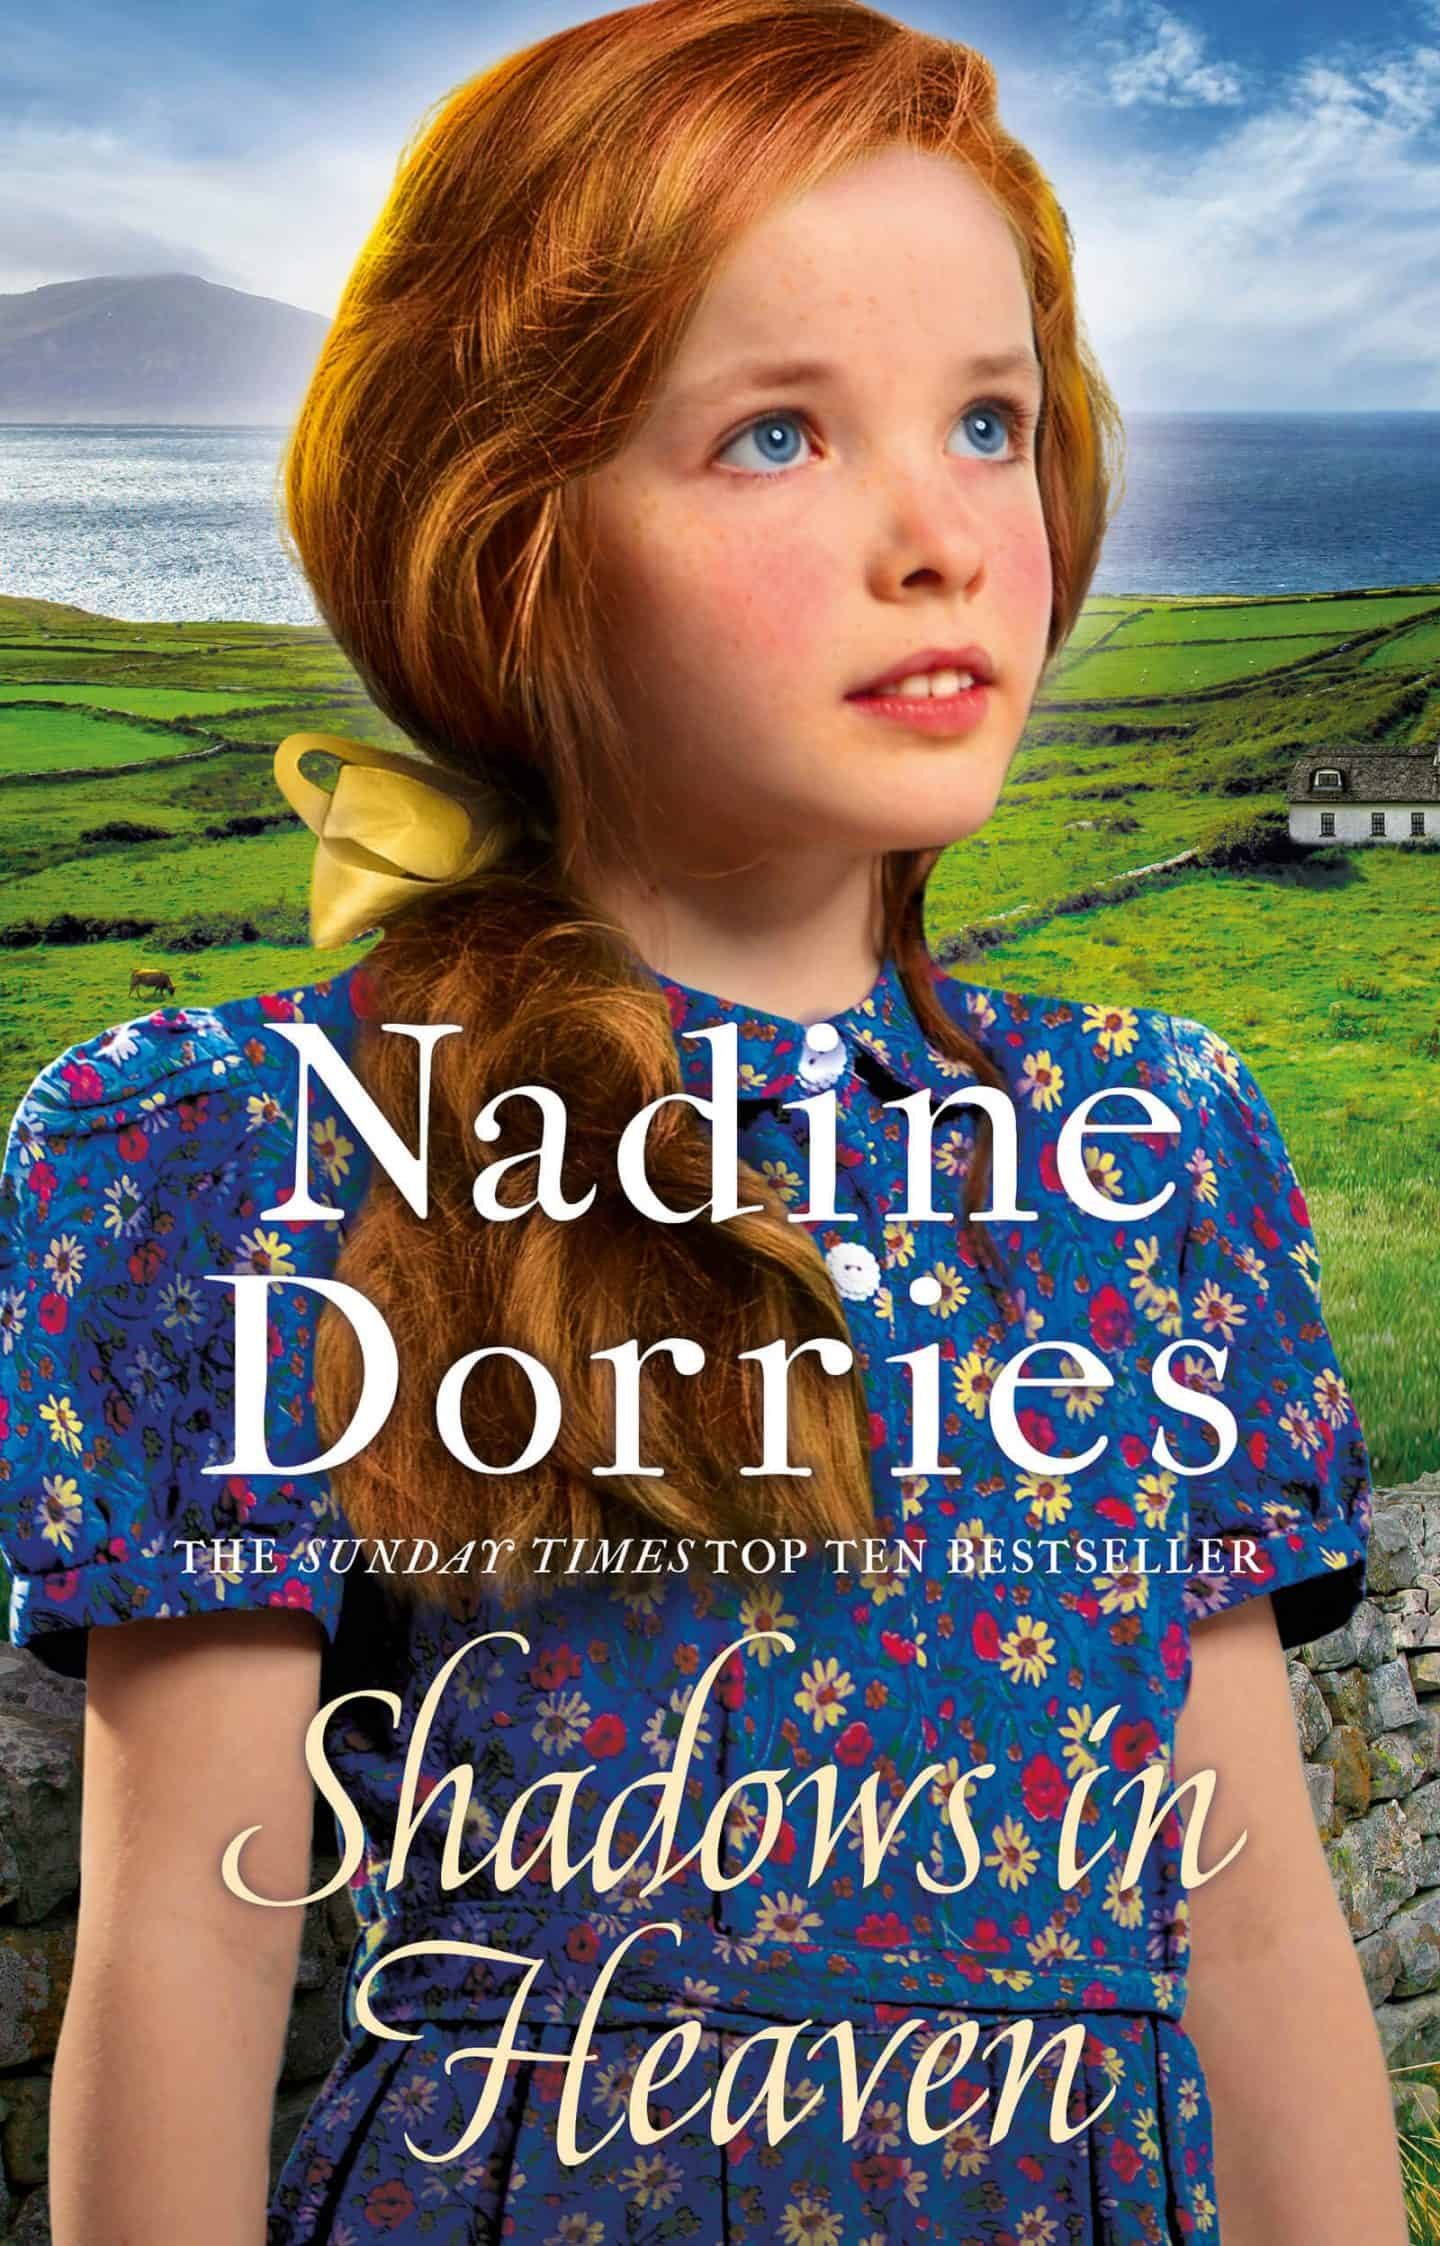 Blog Tour: Giveaway – Shadows in Heaven by Nadine Dorries